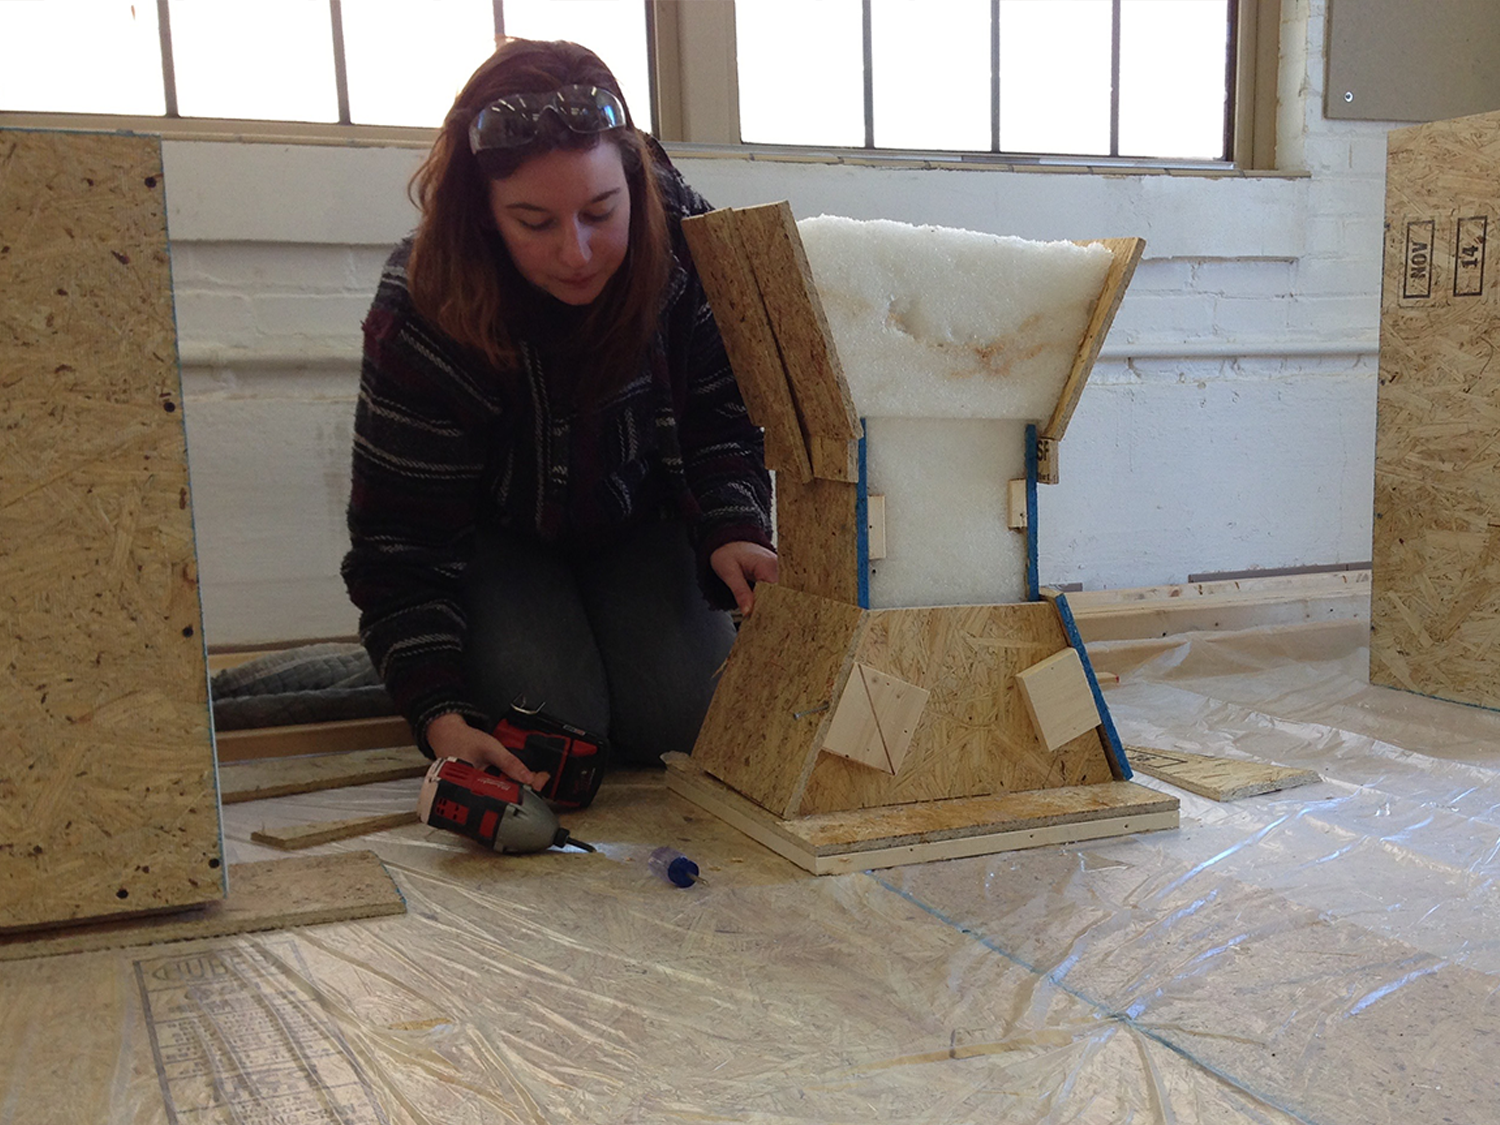 What MFA programs in studio art do not require a BFA or previous undergrauate coursework?